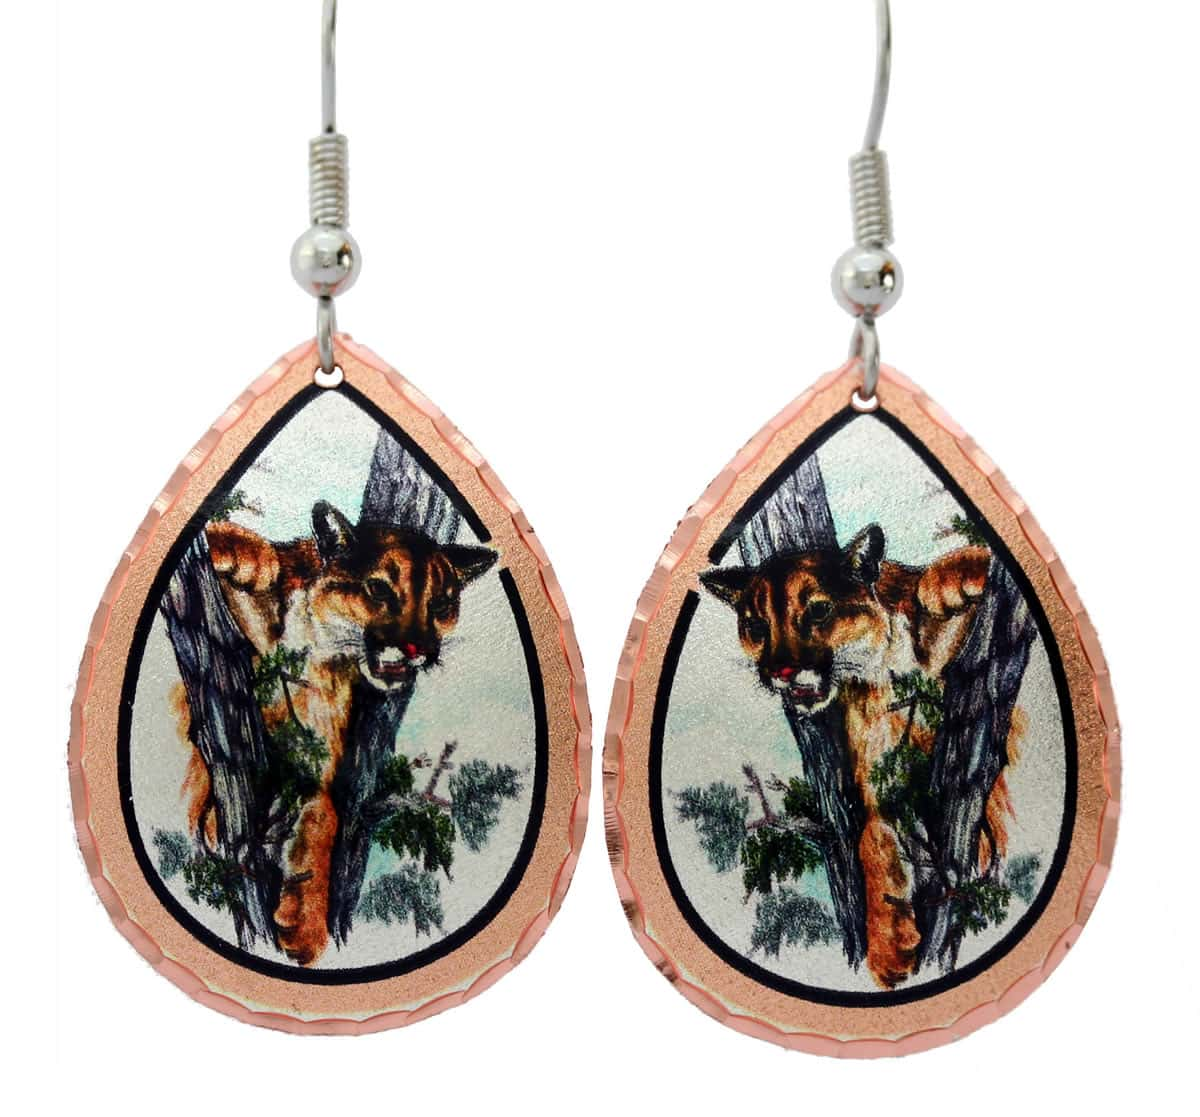 Wholesale art jewelry, cougar earrings made from watercolor artwork by Lynn Bean